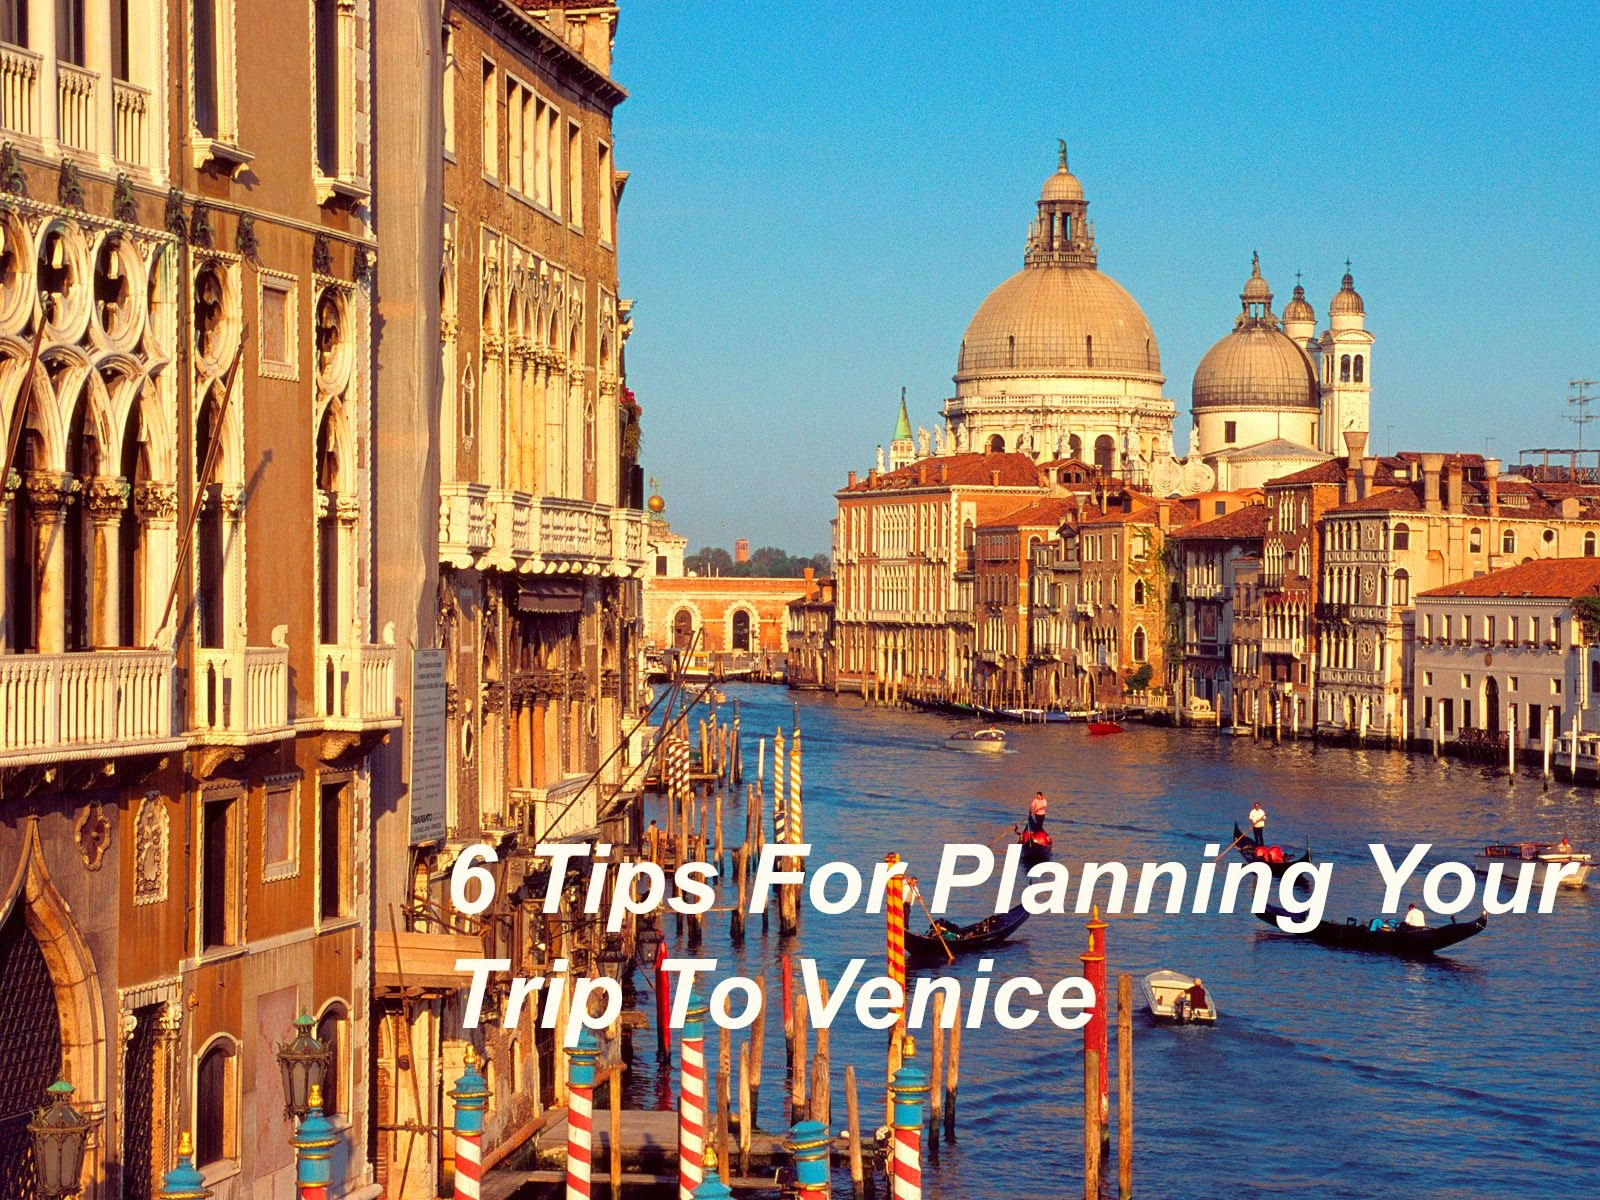 Tips-For-Planning-A Trip-To-Venice